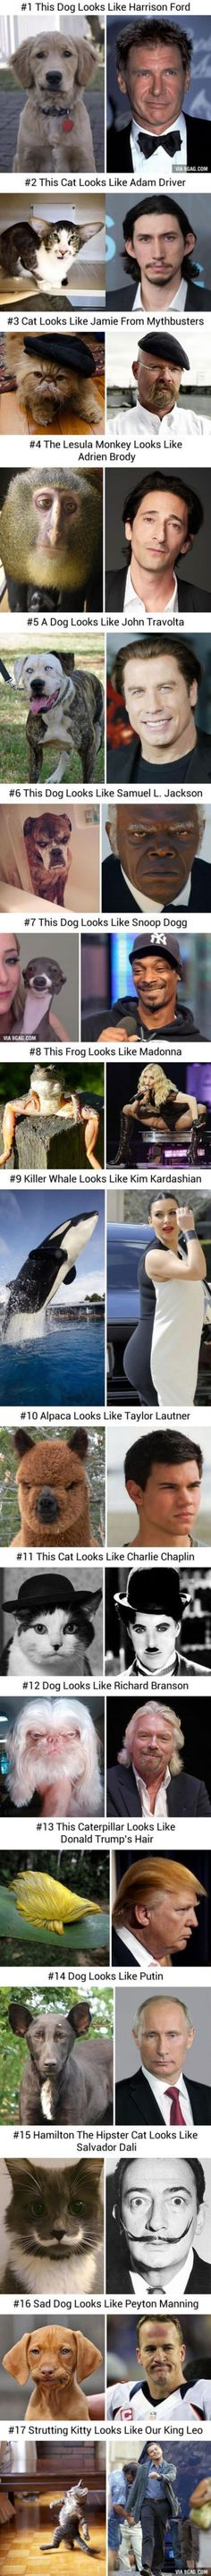 17 Best Look Like Pictures you ever seen: Animals vs Celebrities and Famous People - funny photo hilarious Funny Animal Memes, Cute Funny Animals, Funny Animal Pictures, Funny Cute, Funny Photos, The Funny, Funny Jokes, Hilarious Quotes, Cat Memes